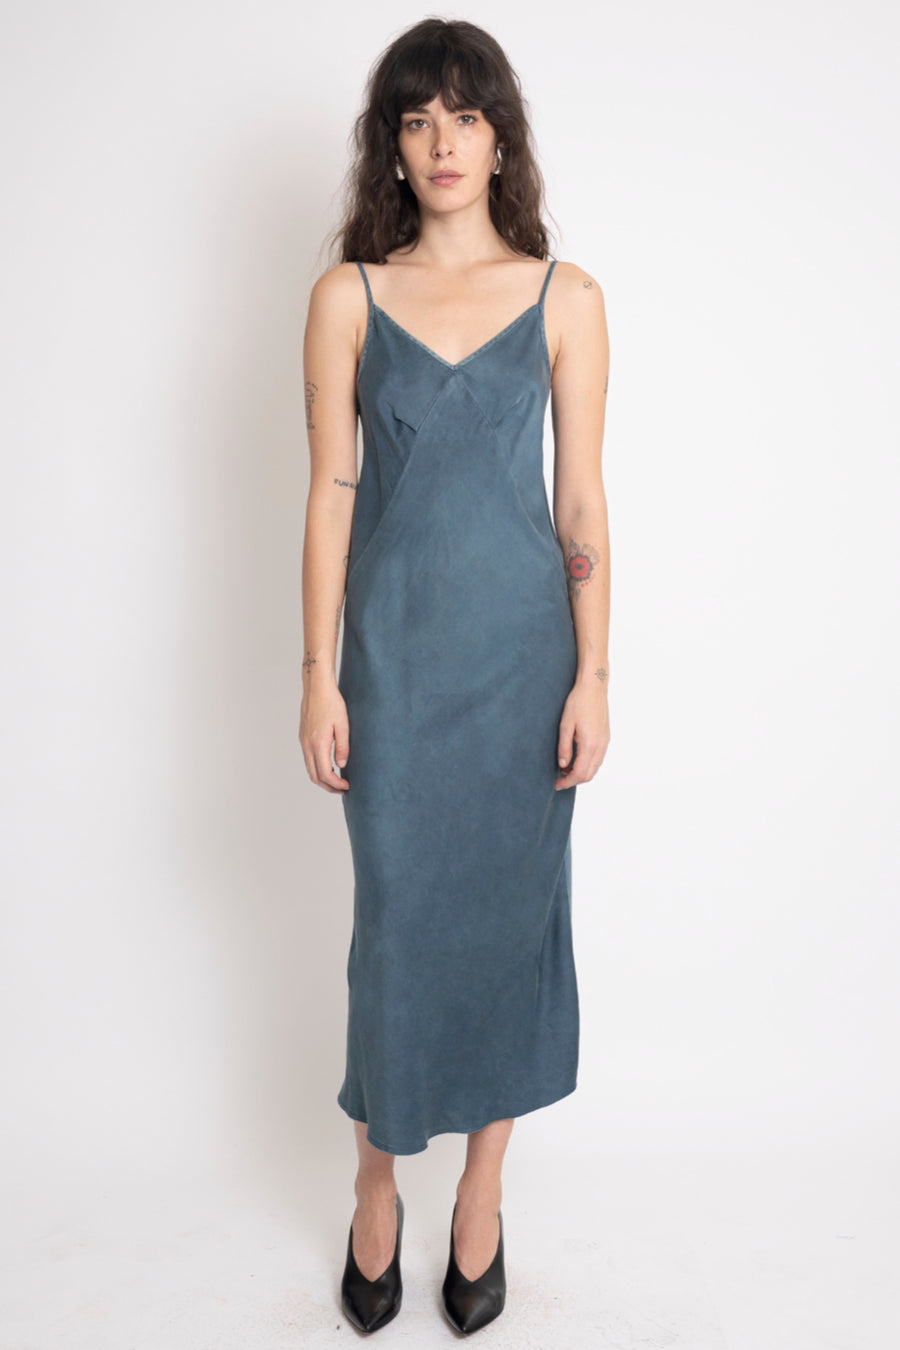 KES 7/8 Triangle Slip Dress FW19 - Organic Dusty Indigo